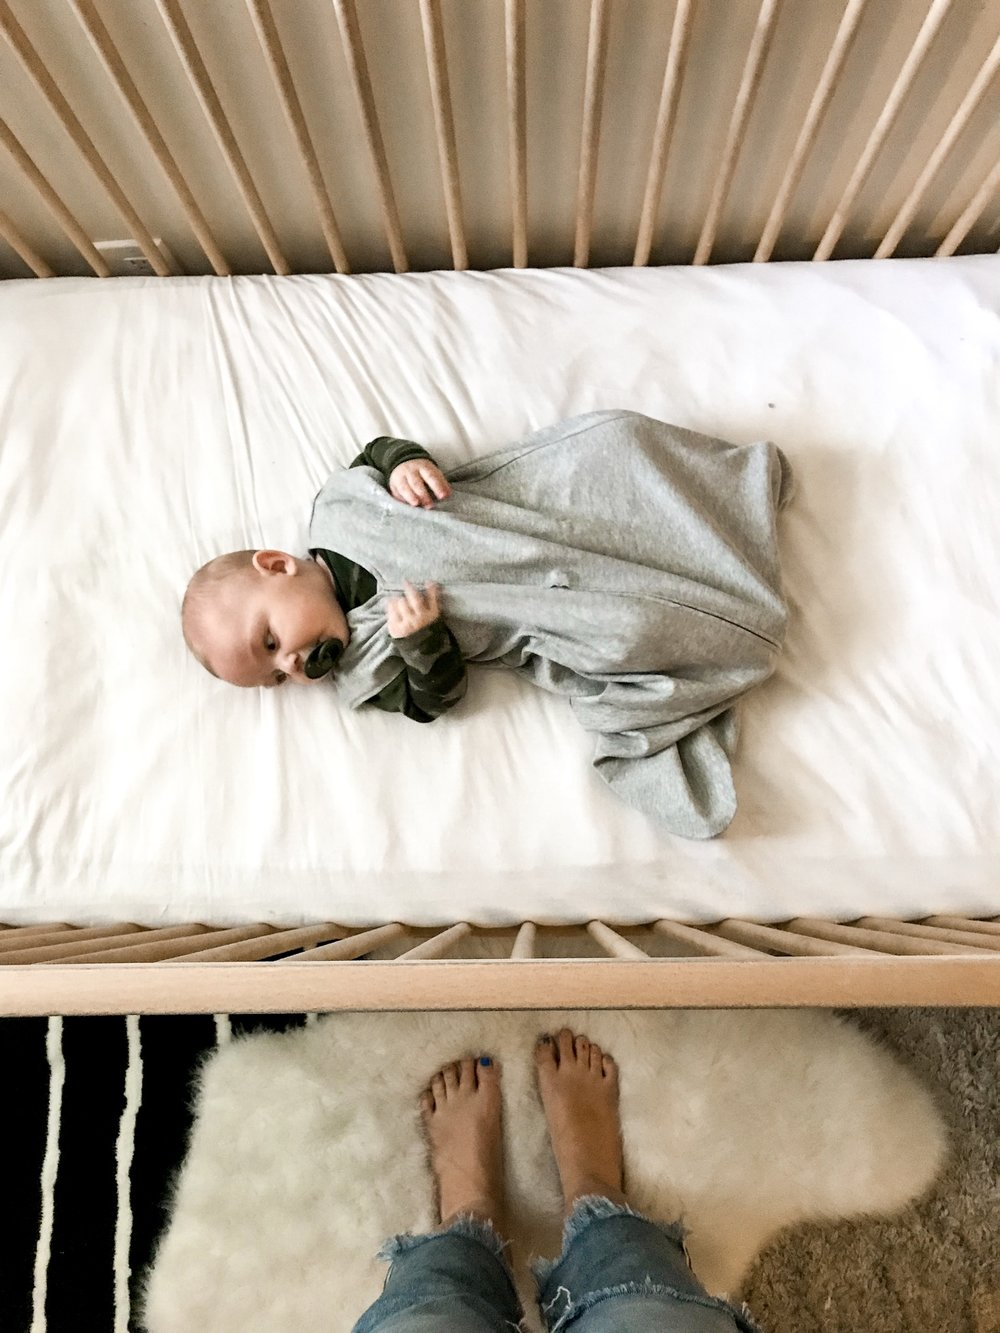 HALO SleepSack - to help babies sleep safe & sound